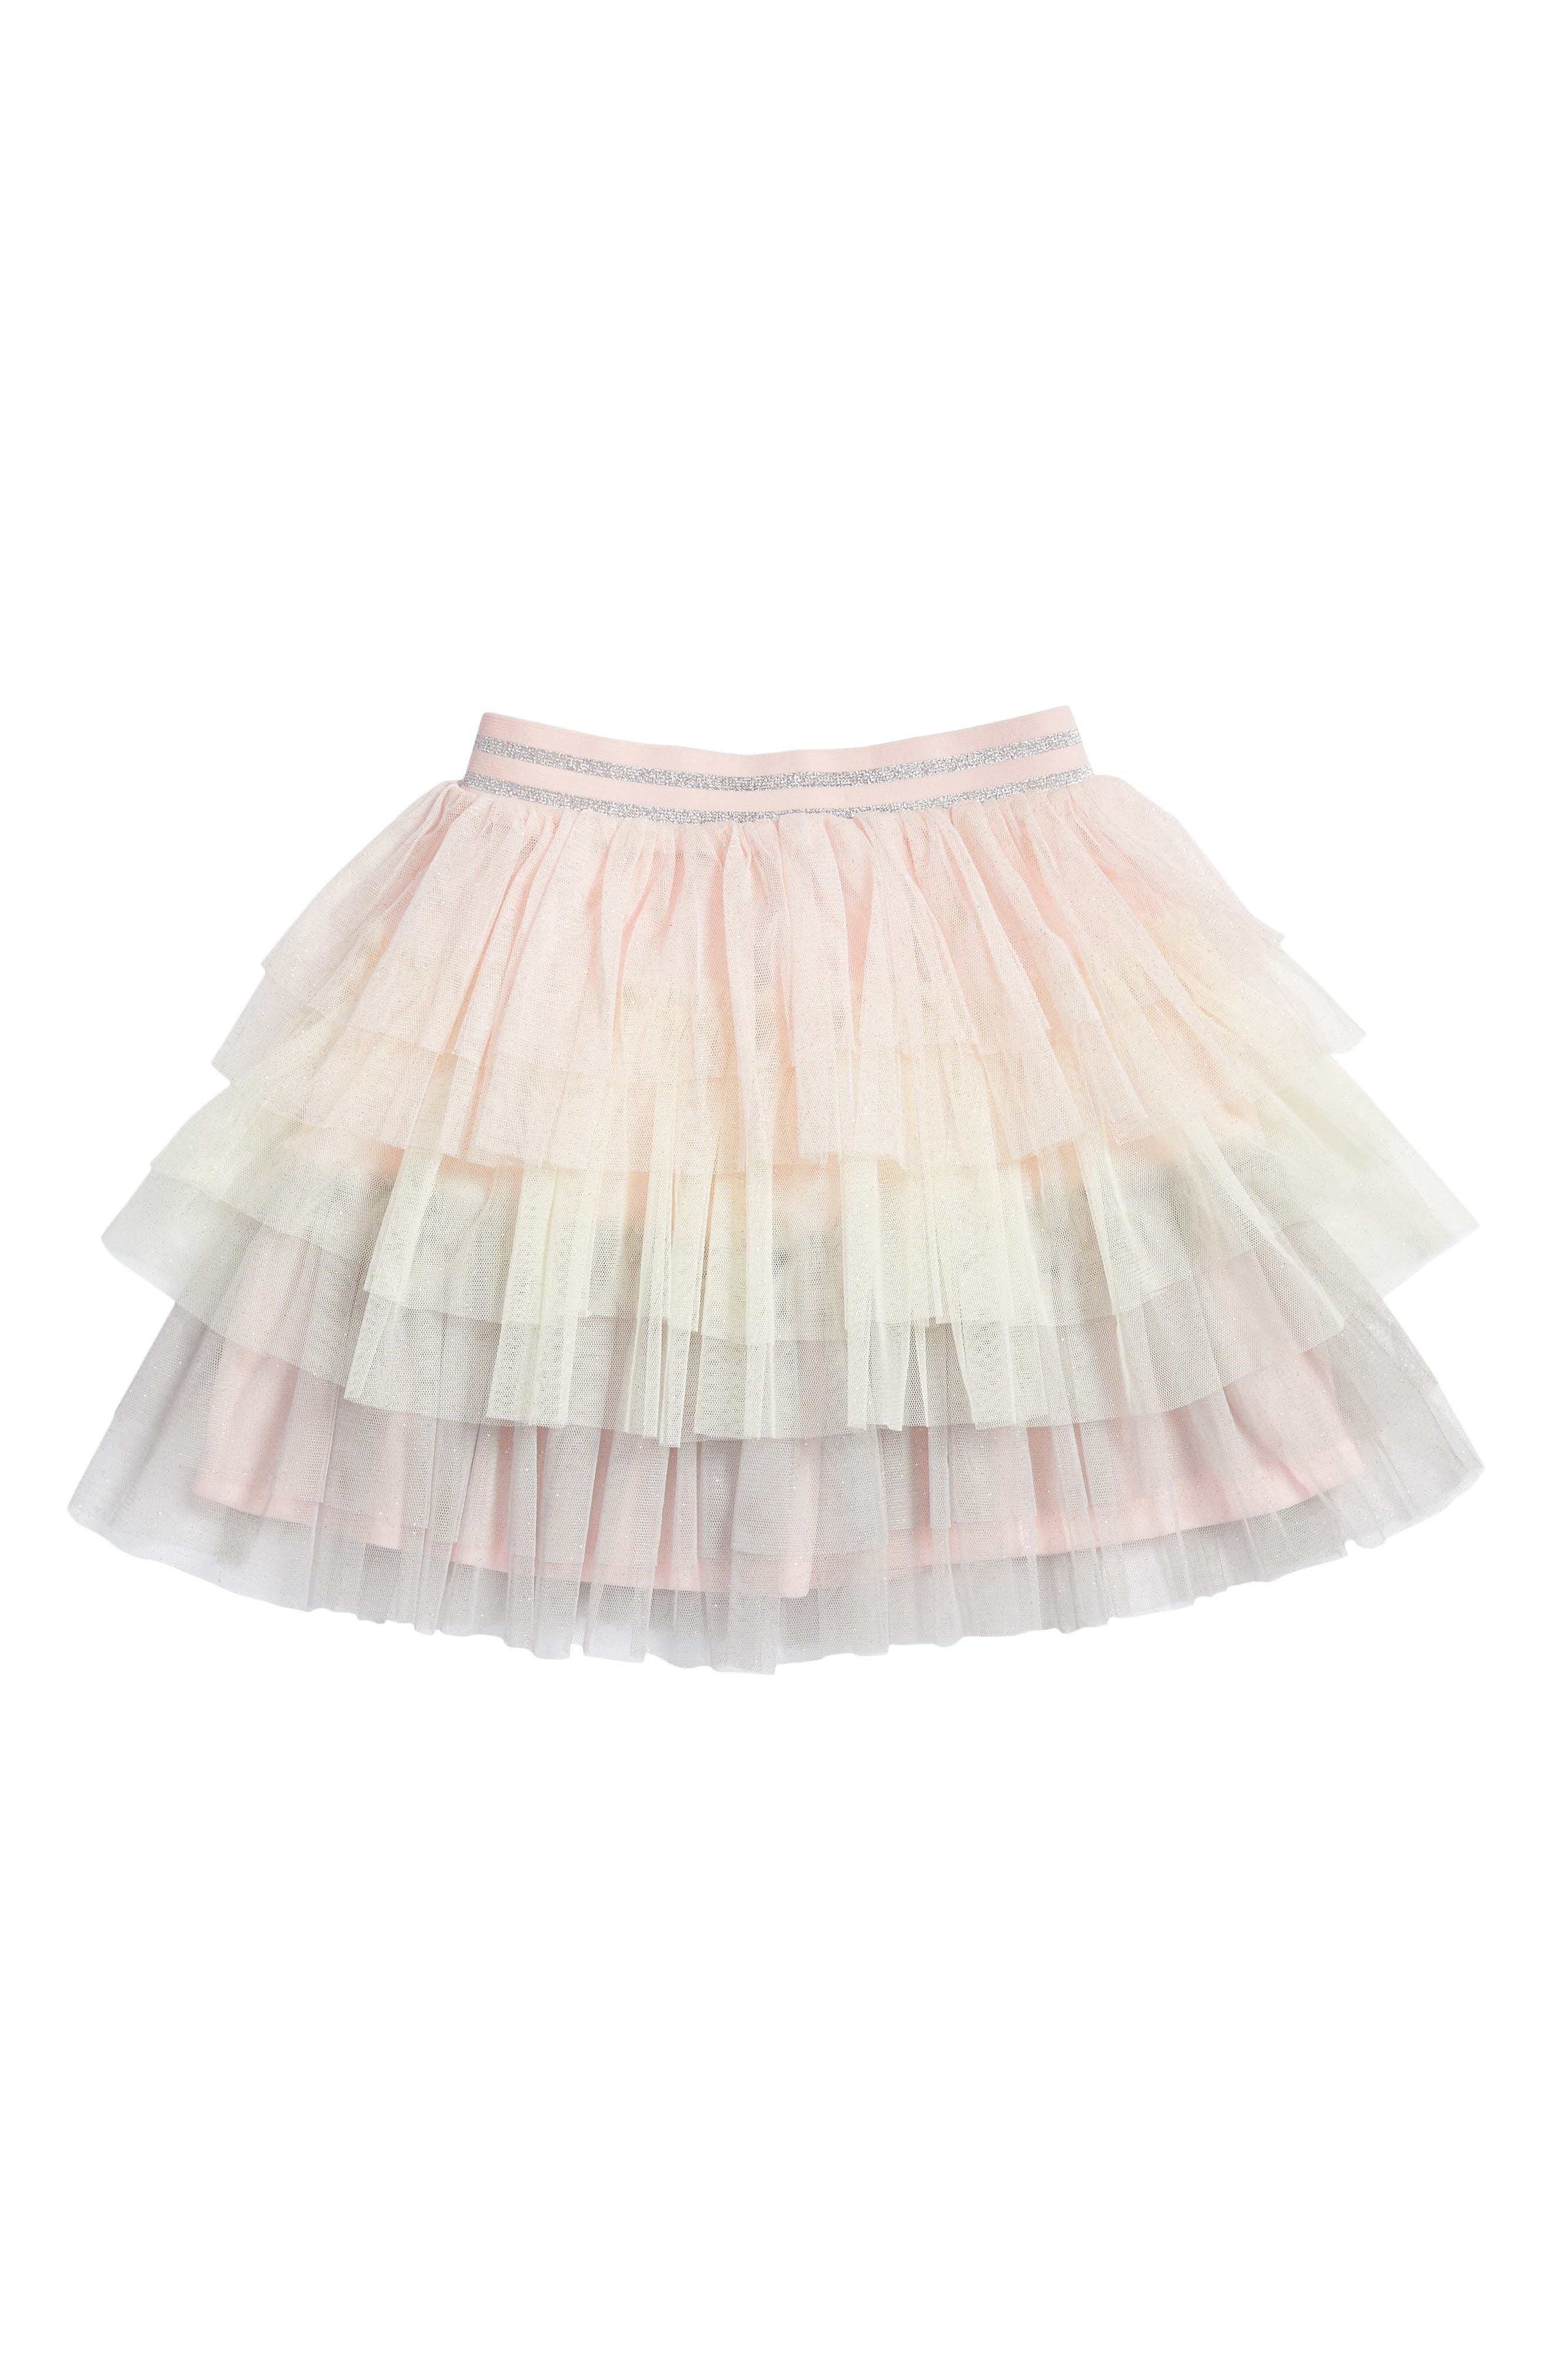 Alternate Image 1 Selected - Truly Me Tiered Tutu Skirt (Toddler Girls & Little Girls)